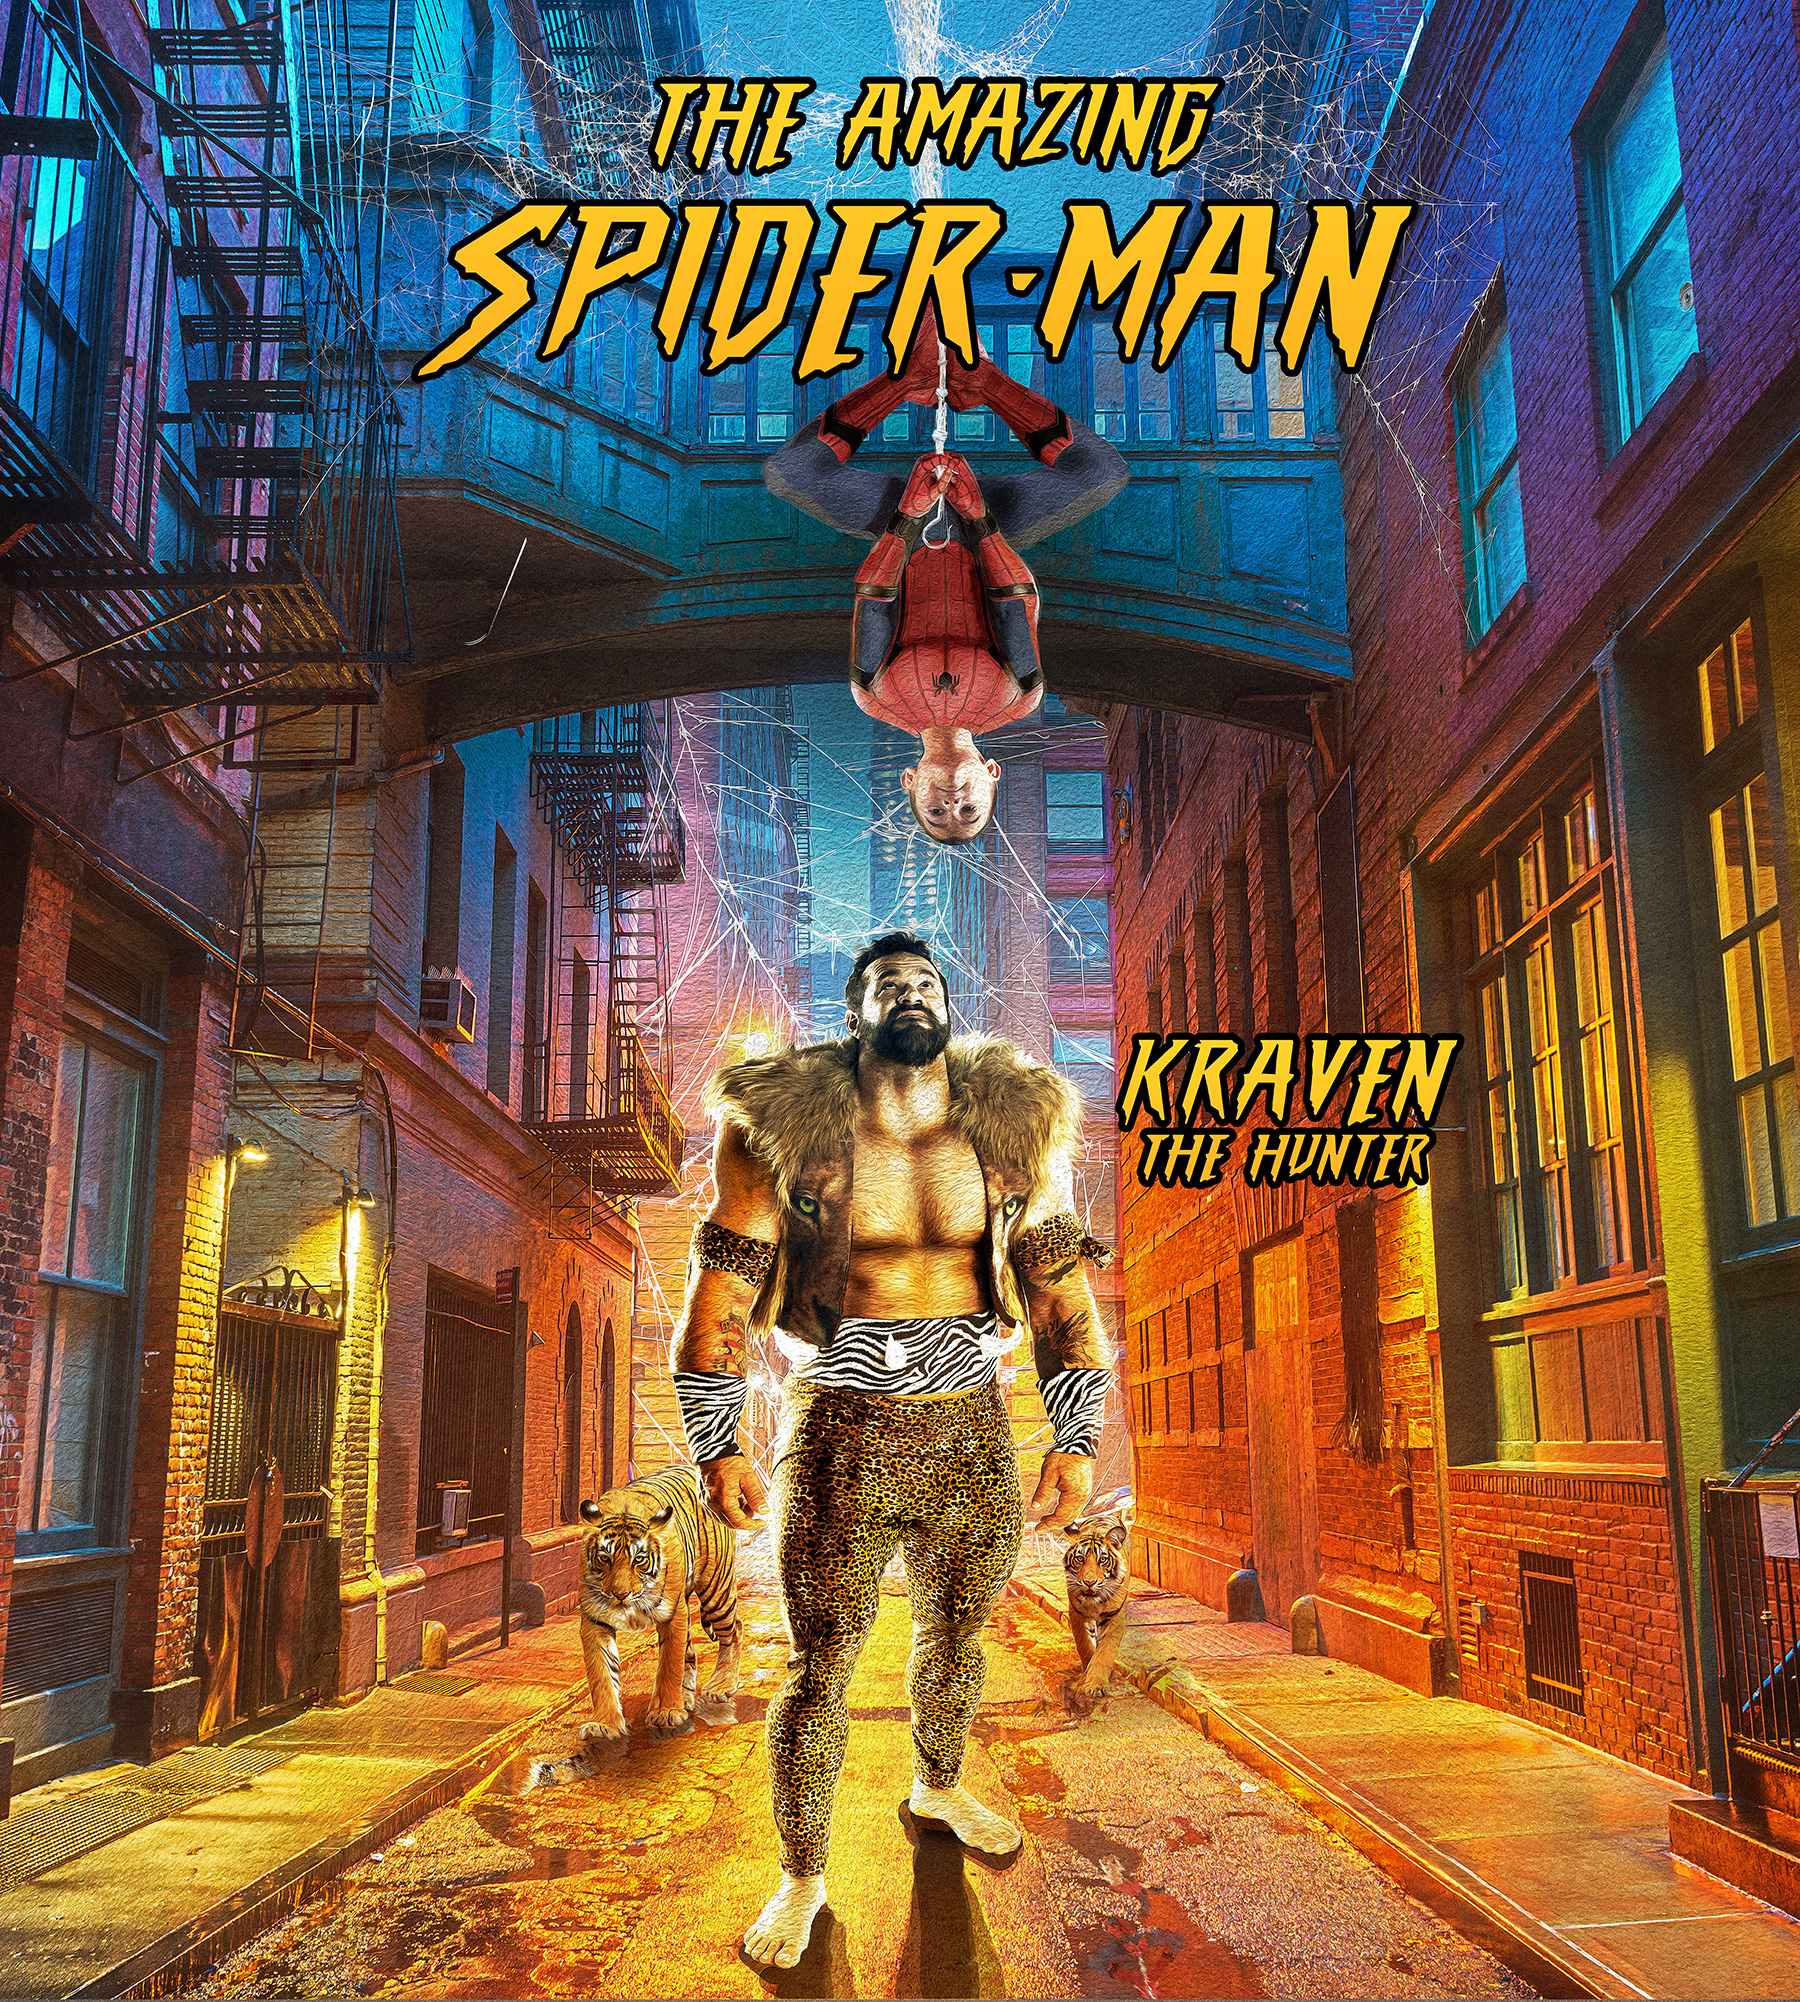 A father and Son - Dad wanted a movie poster with Spider man his son. We agreed on Kraven the Hunter as the villain. The awesome Kraven suit was sewn by Staci Rizner.